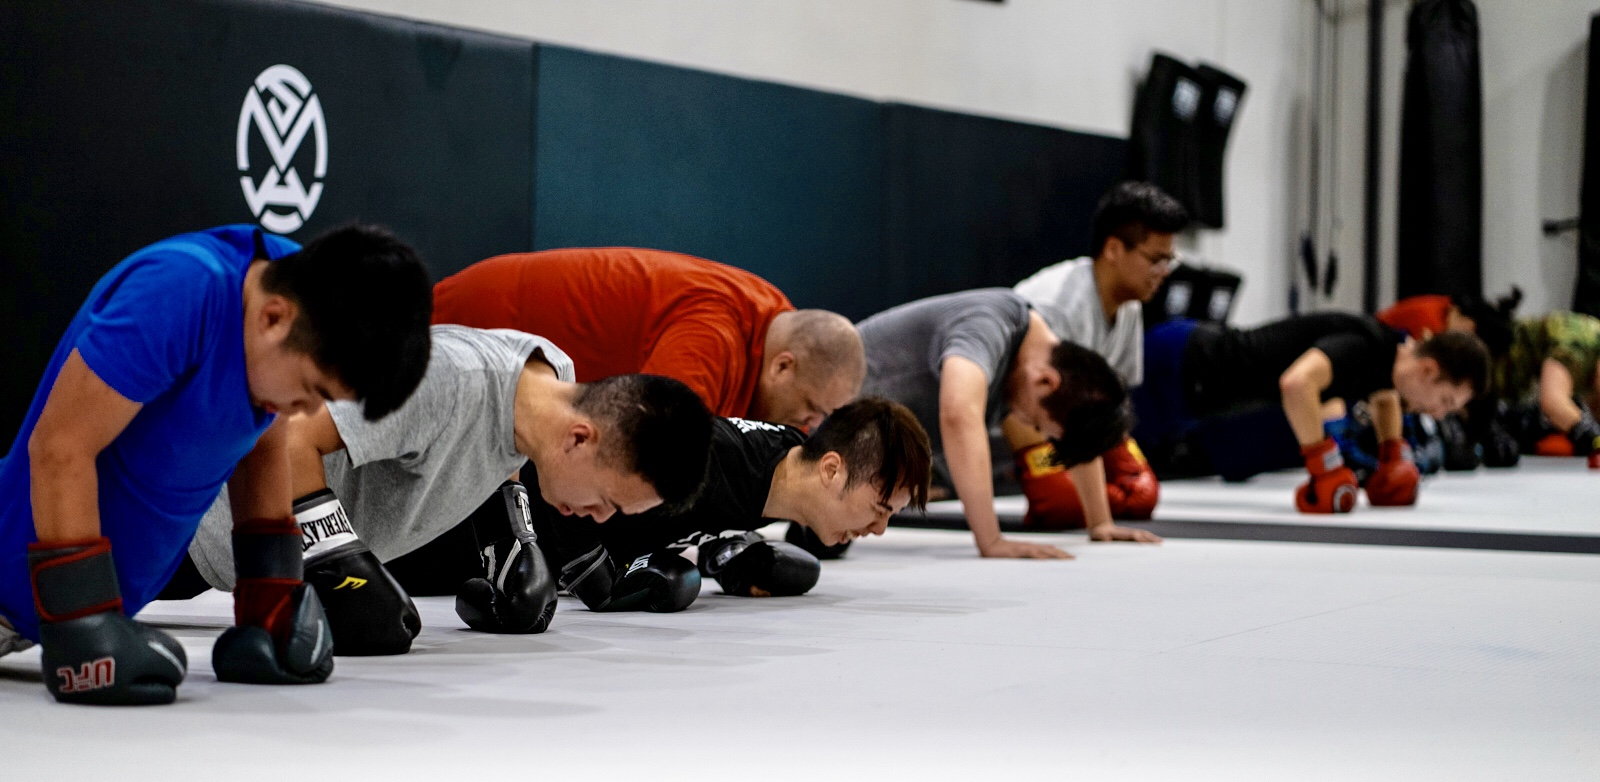 Joe Hernandez in pushup stance with Kickboxing Muay Thai teammates at Silanoe San Gabriel Alhambra adjacent